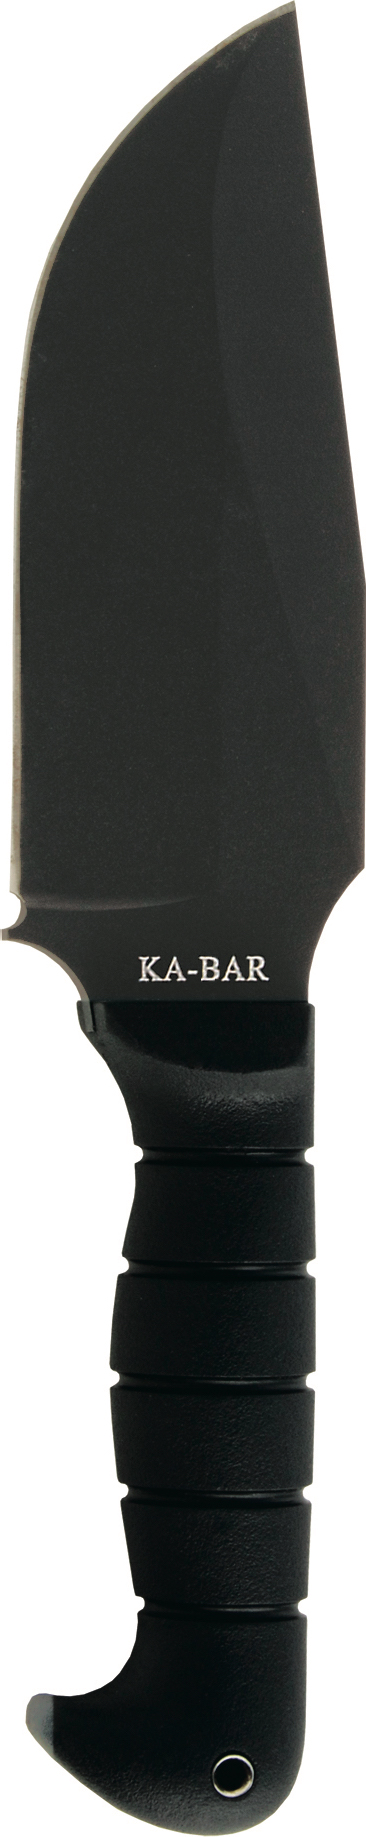 1278 - KA-BAR HEAVY DUTY WARTHOG WITH SHEATH